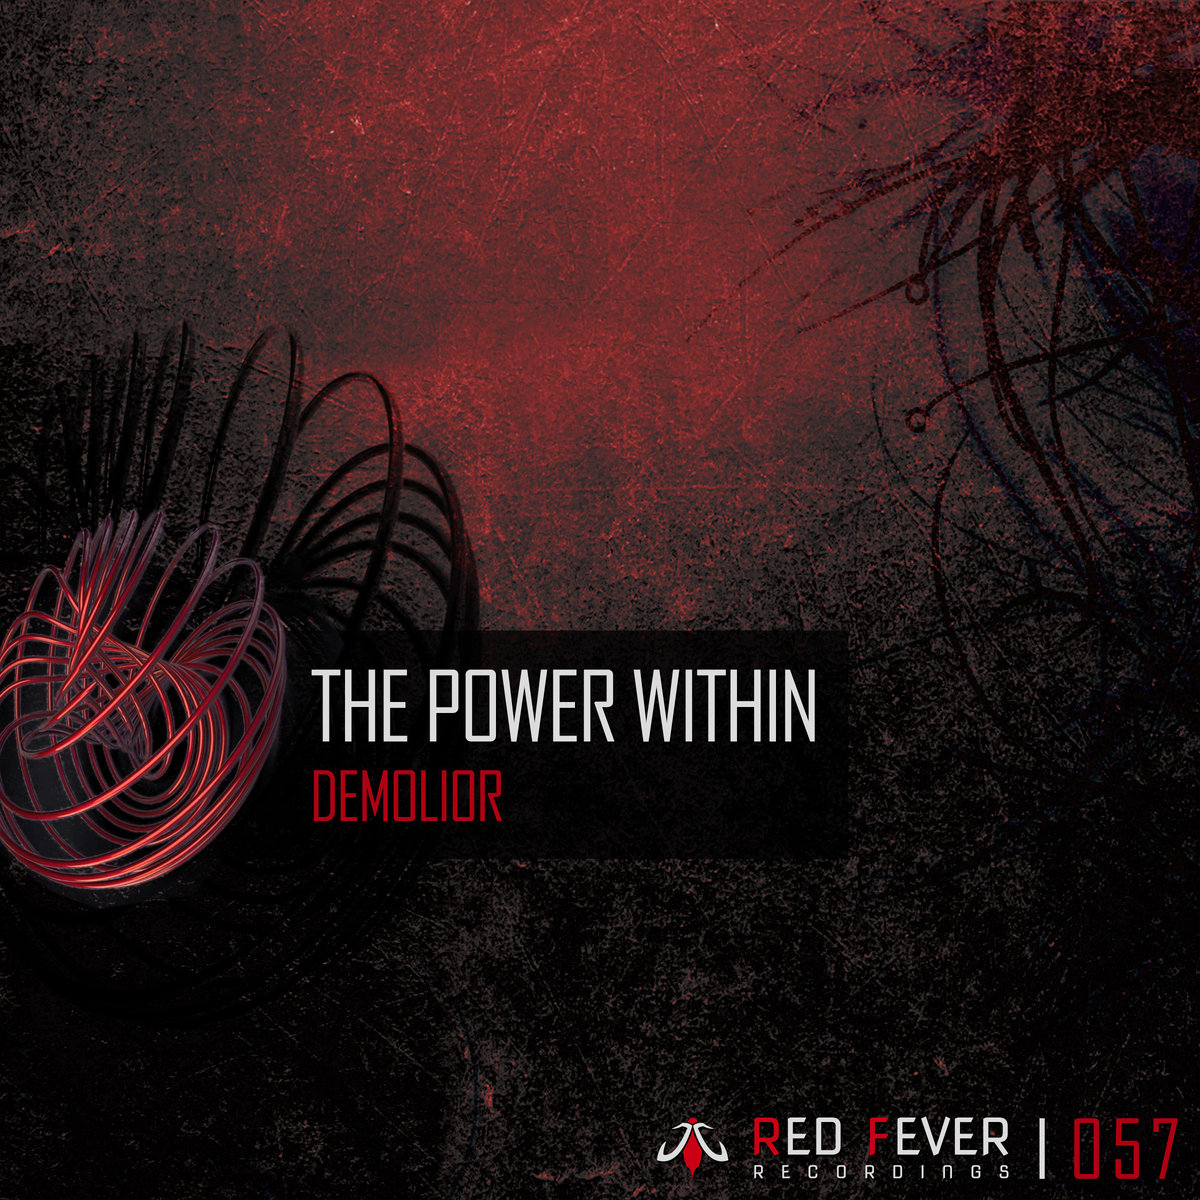 Demolior - The Power Within (Project4life remix) @ 'The Power Within' album (demolior, electronic)